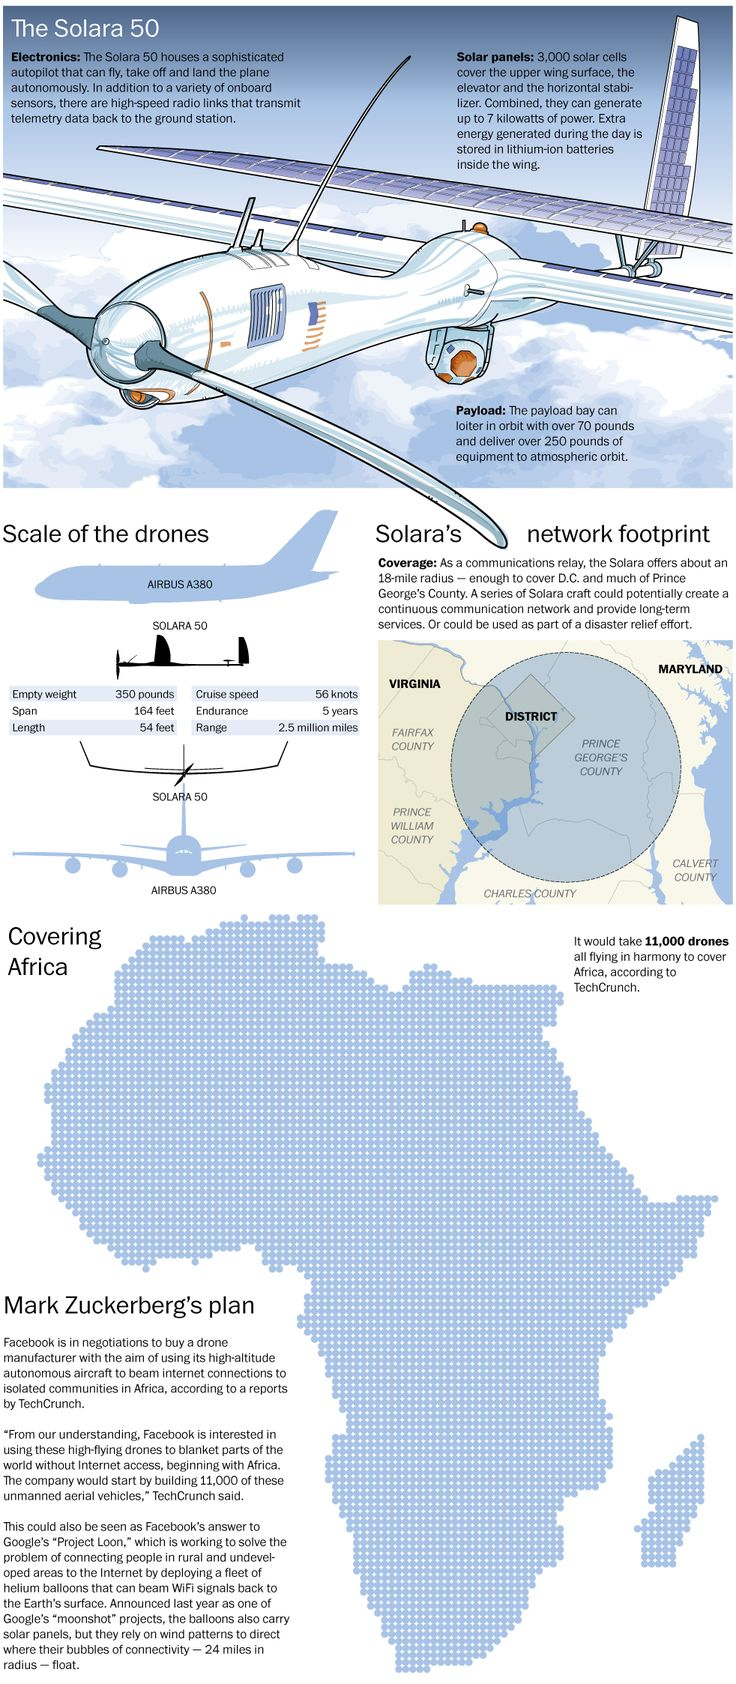 Africa, you will have Facebook - this is why Facebook wants to buy drones.